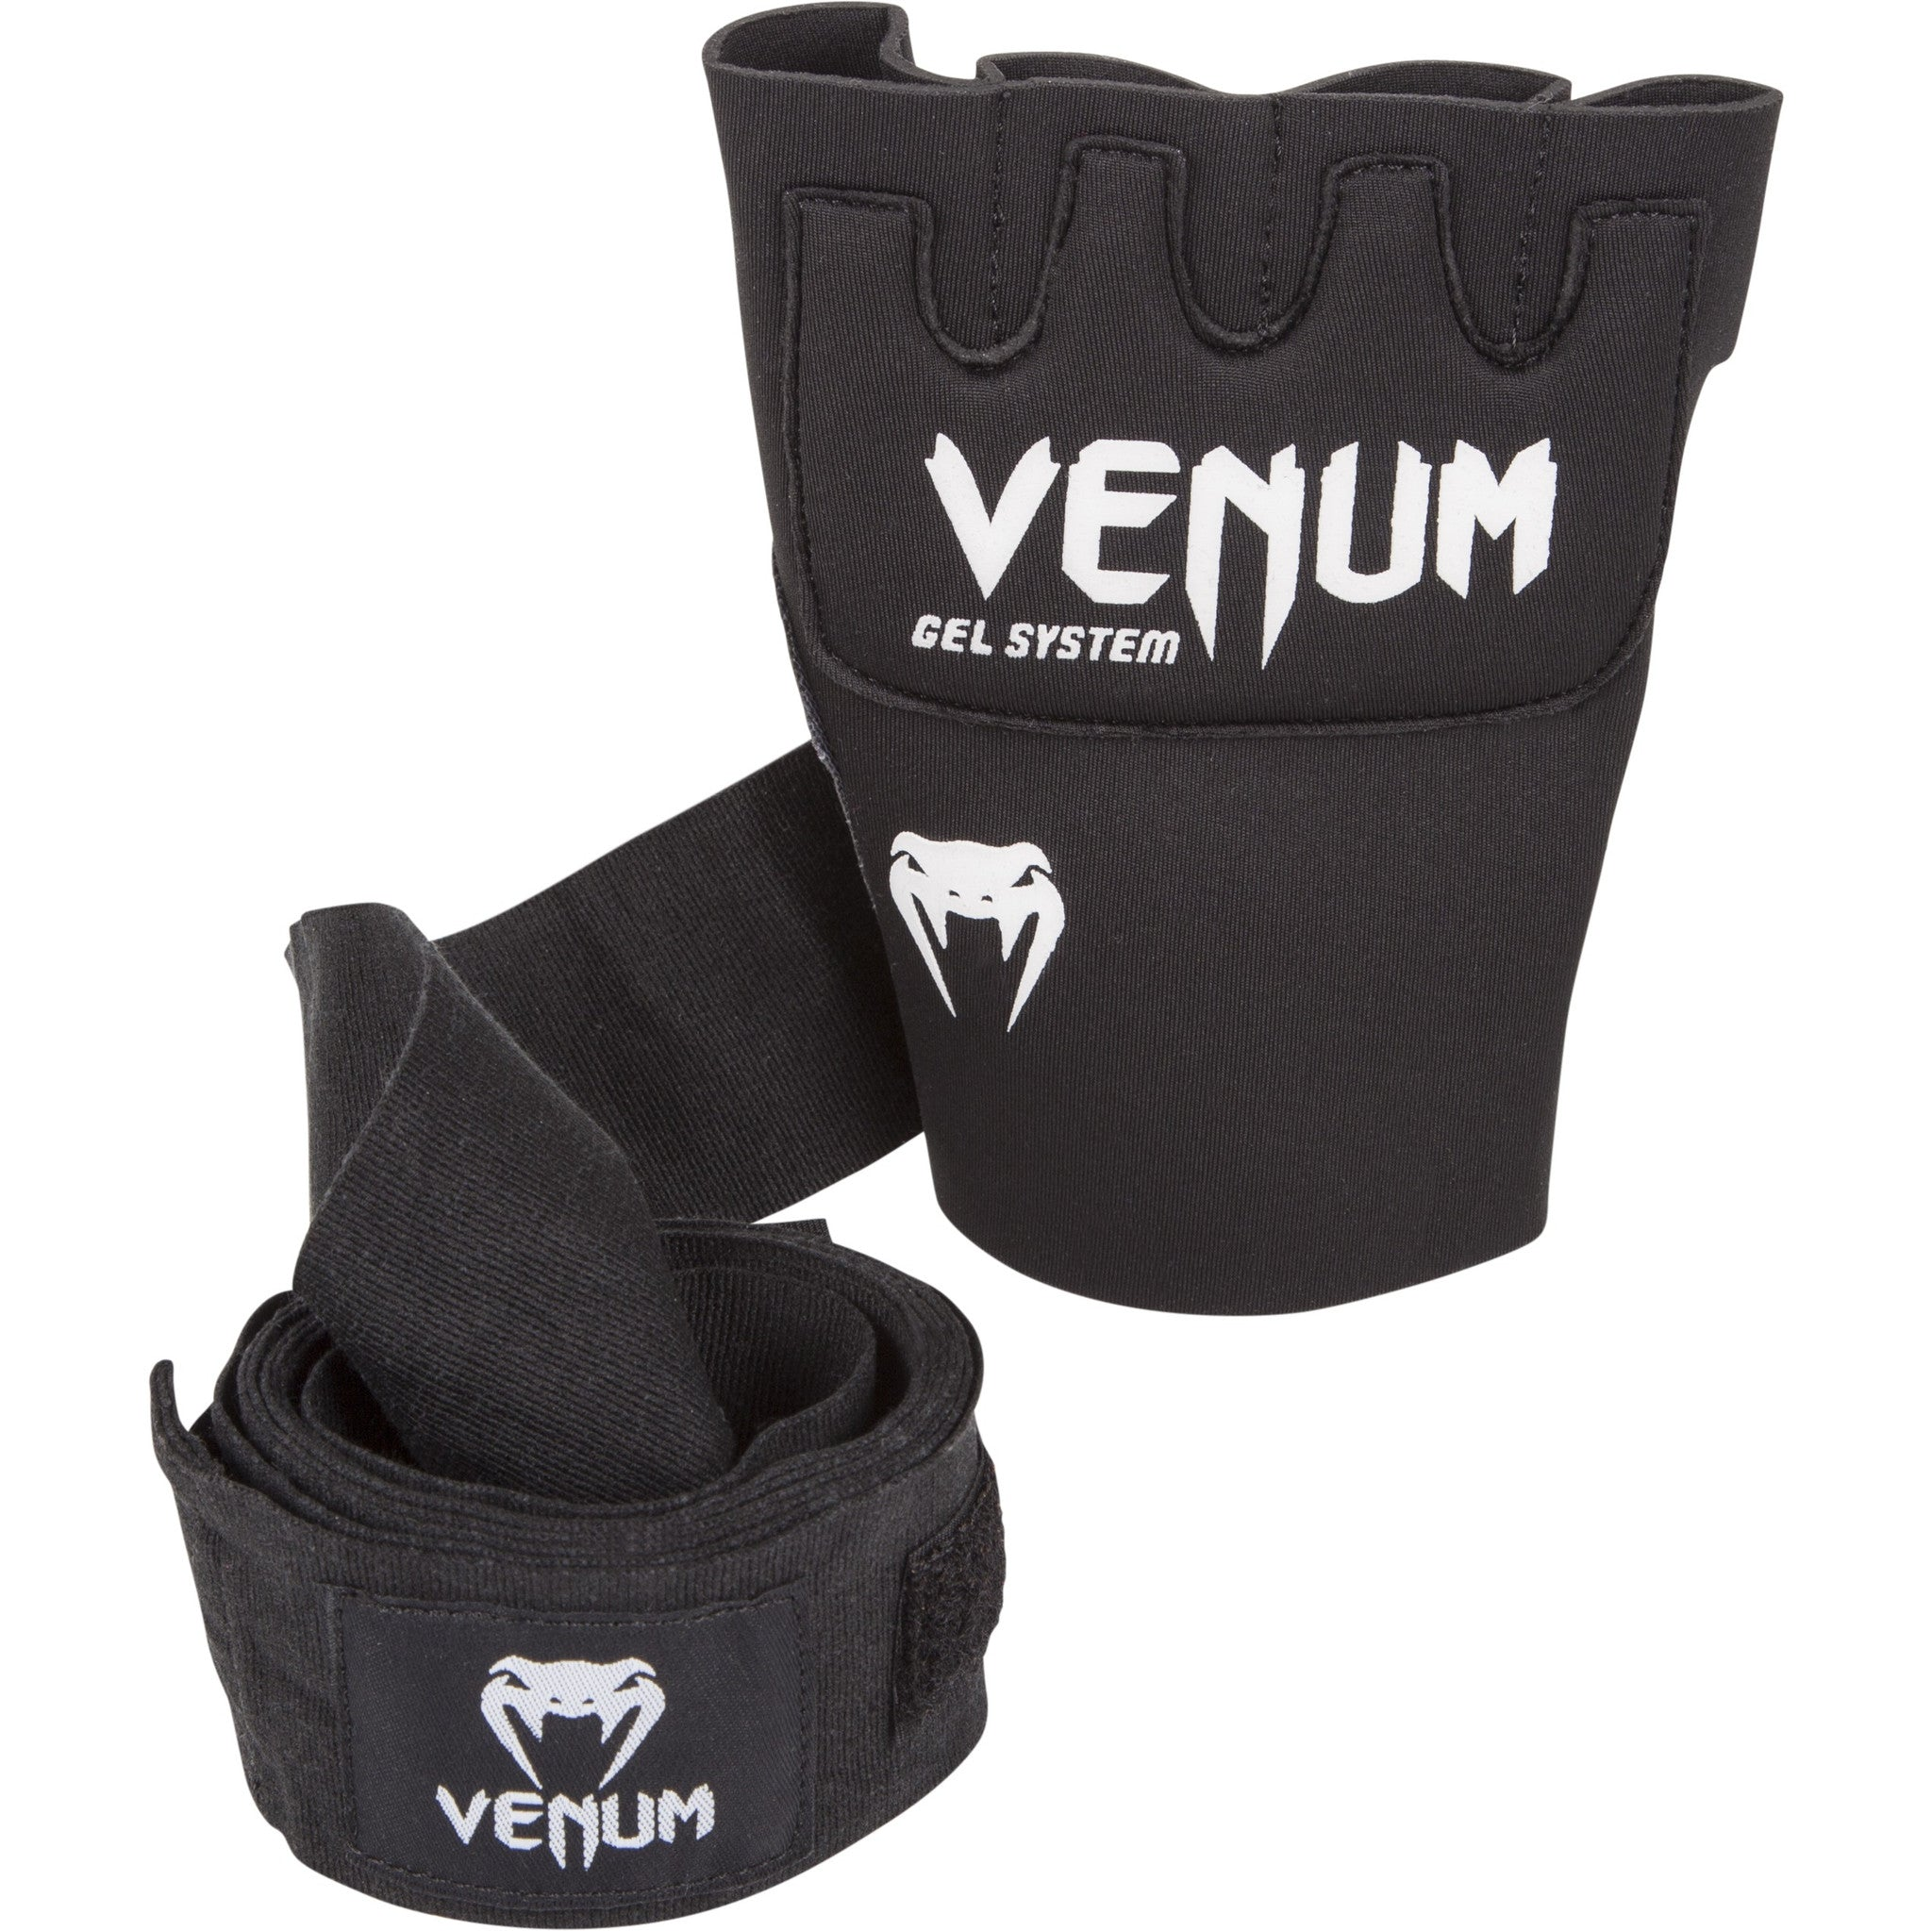 Venum gel glove with wraps